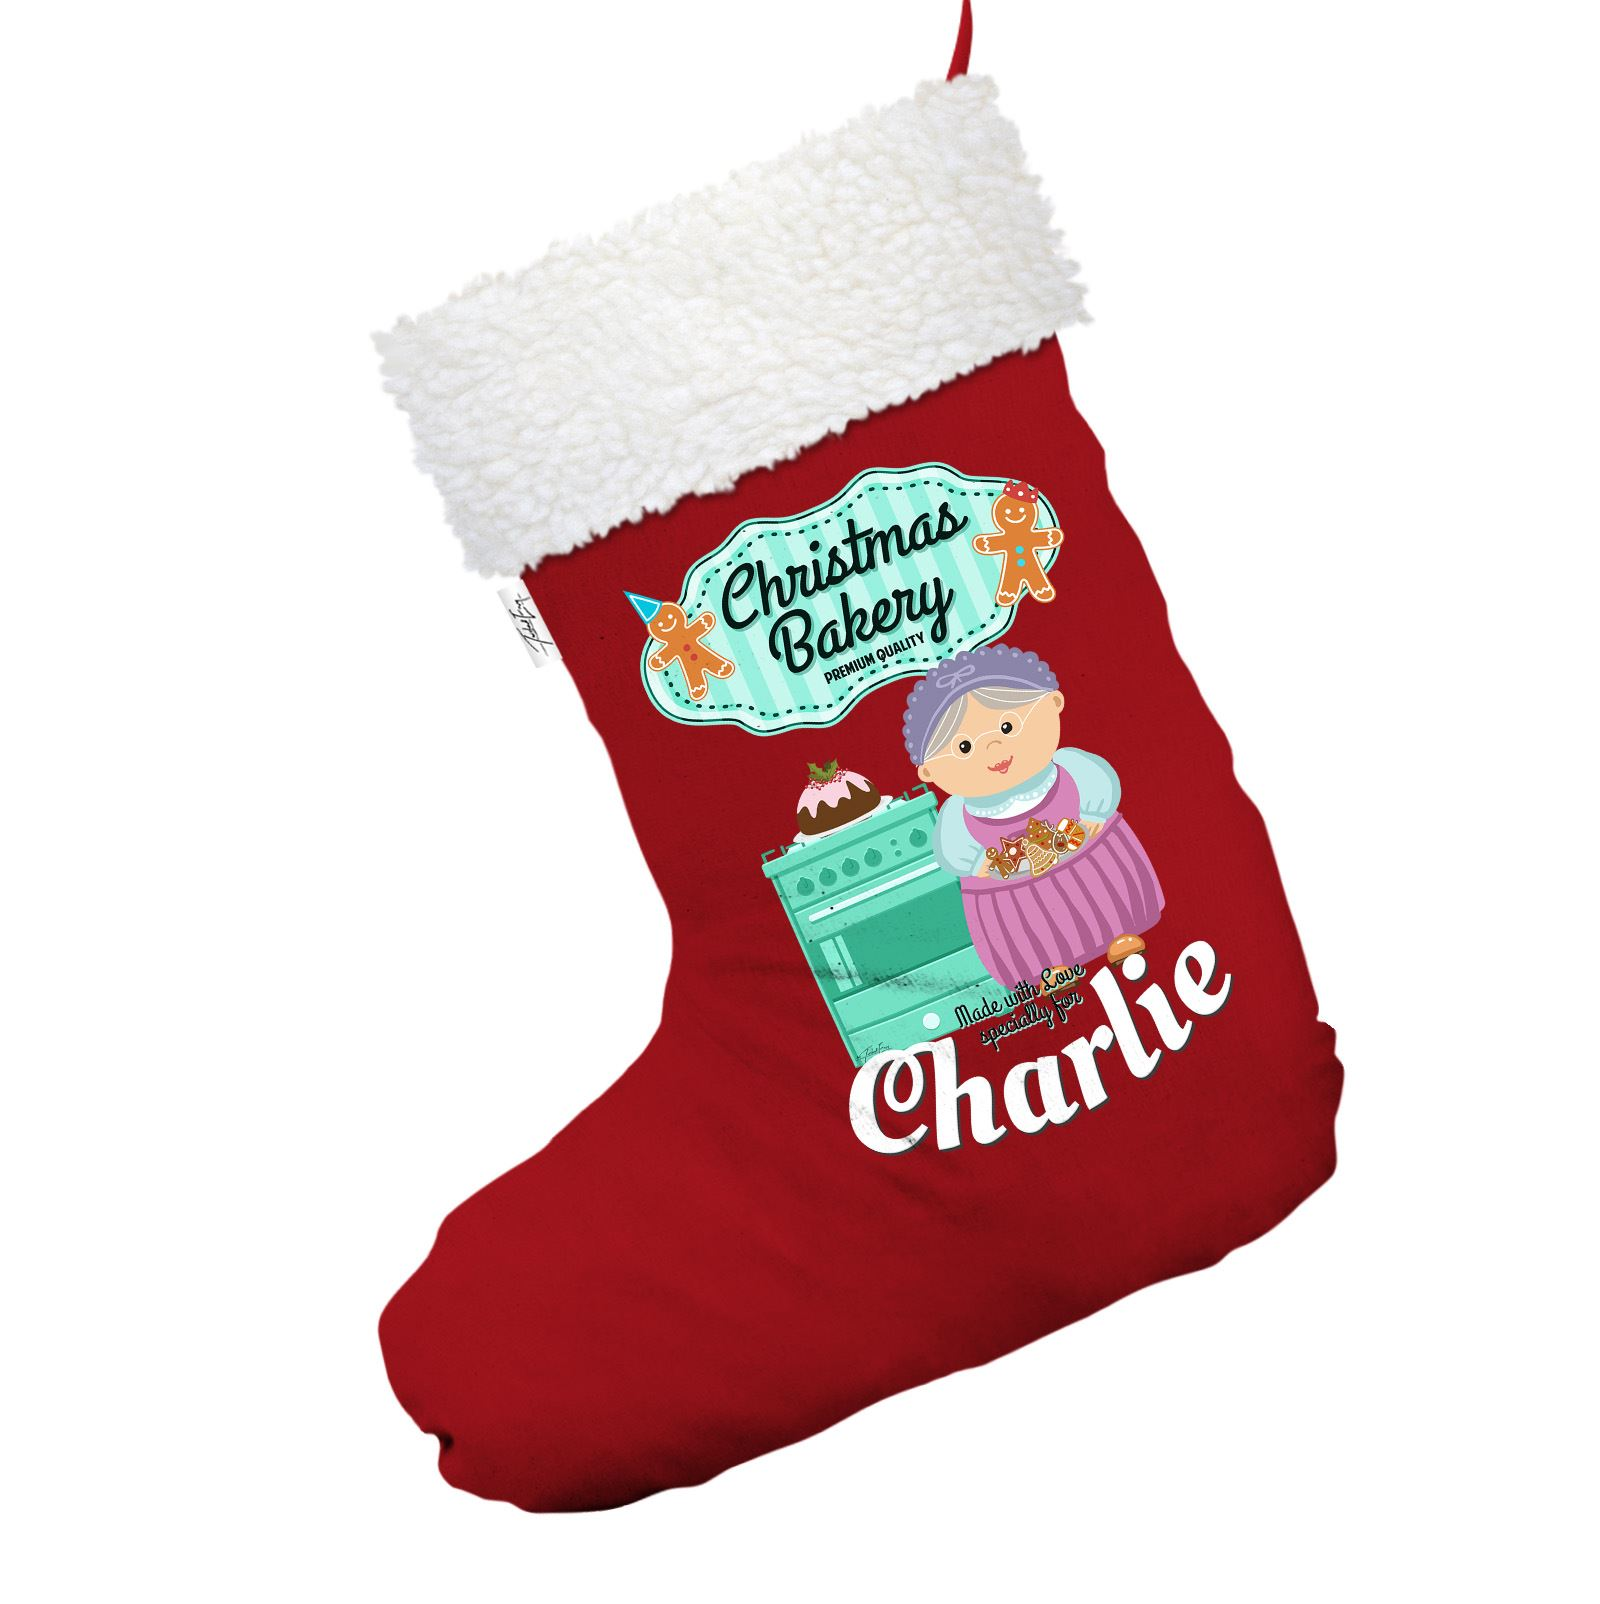 Details About Grandma S Gingerbread Cookies Personalised Red Christmas Stocking White Trim